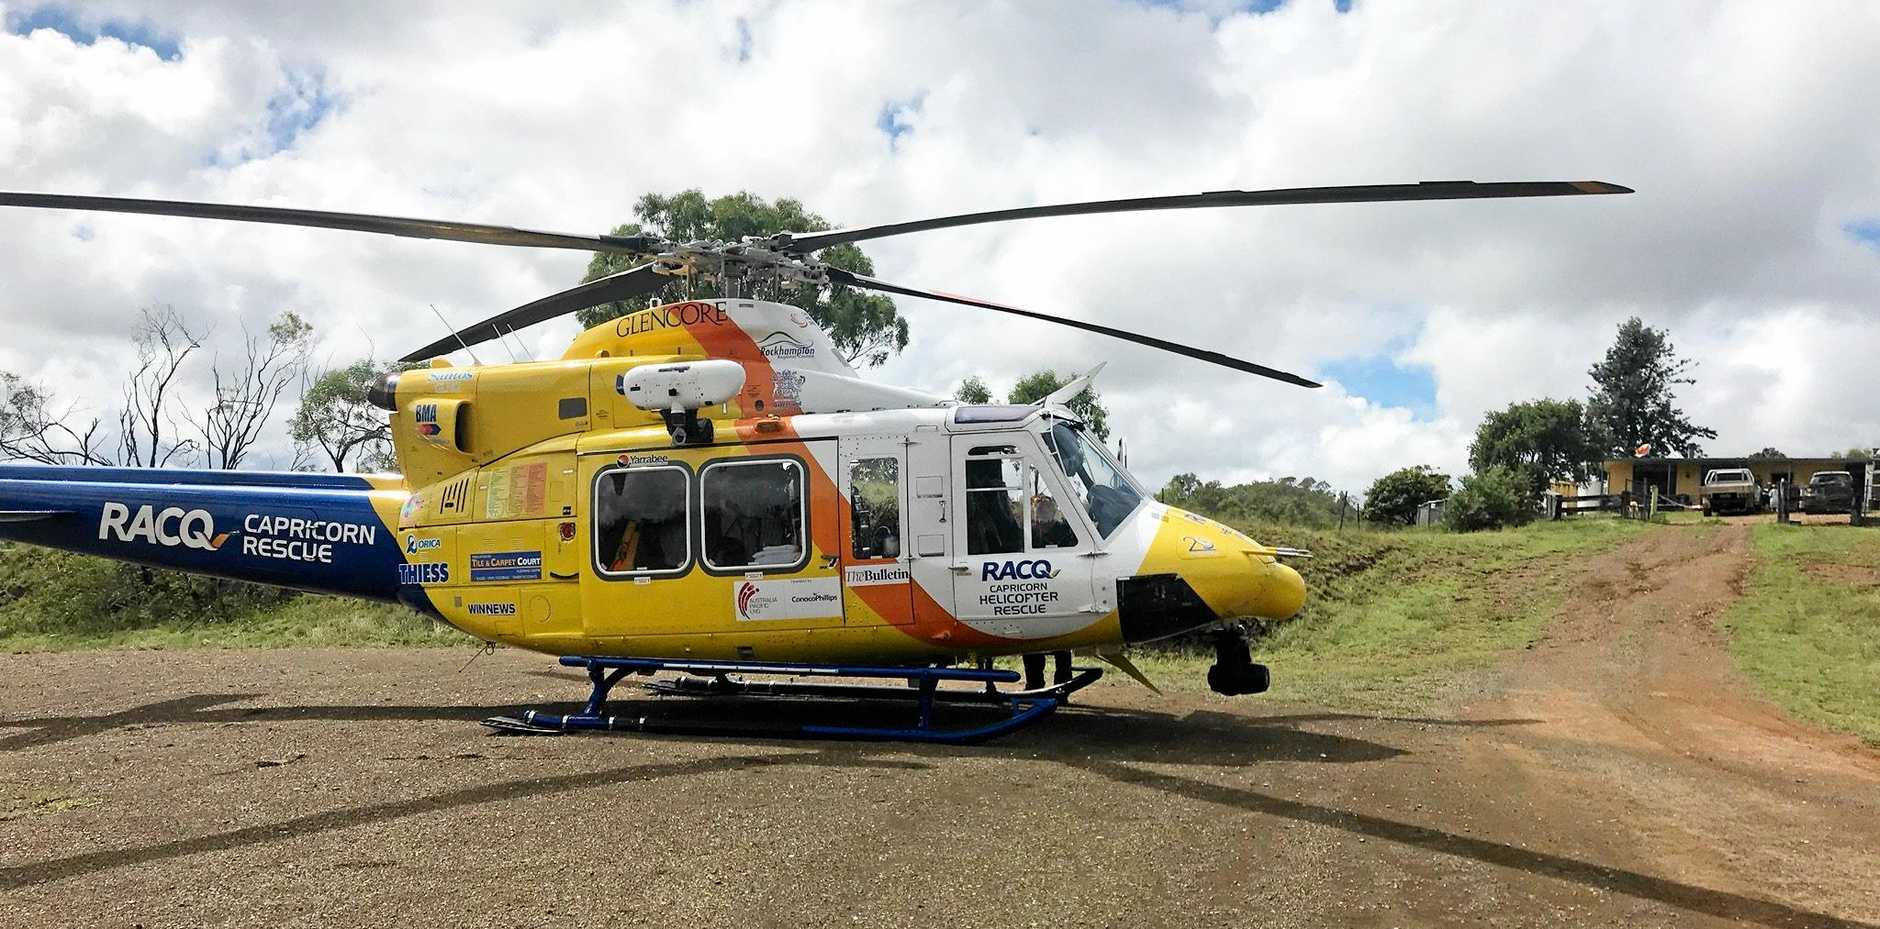 The rescue chopper has been called to the scene.